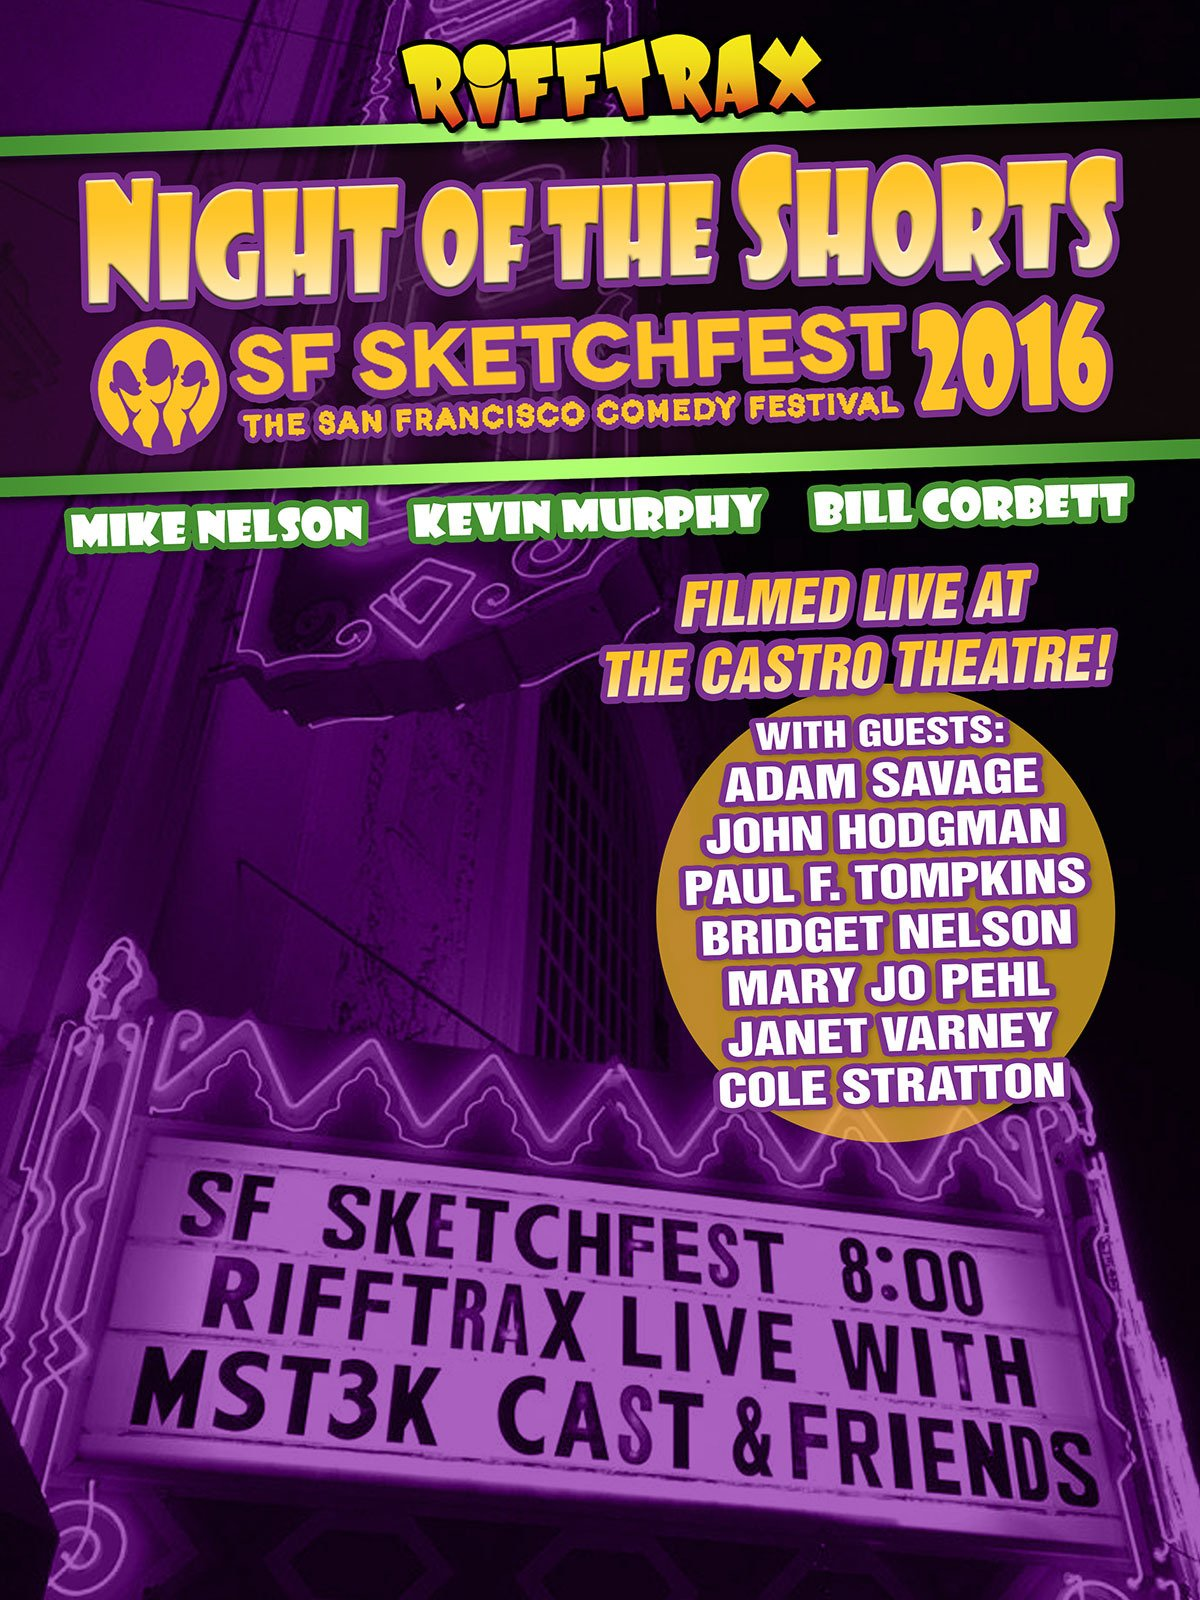 RiffTrax: Night of the Shorts